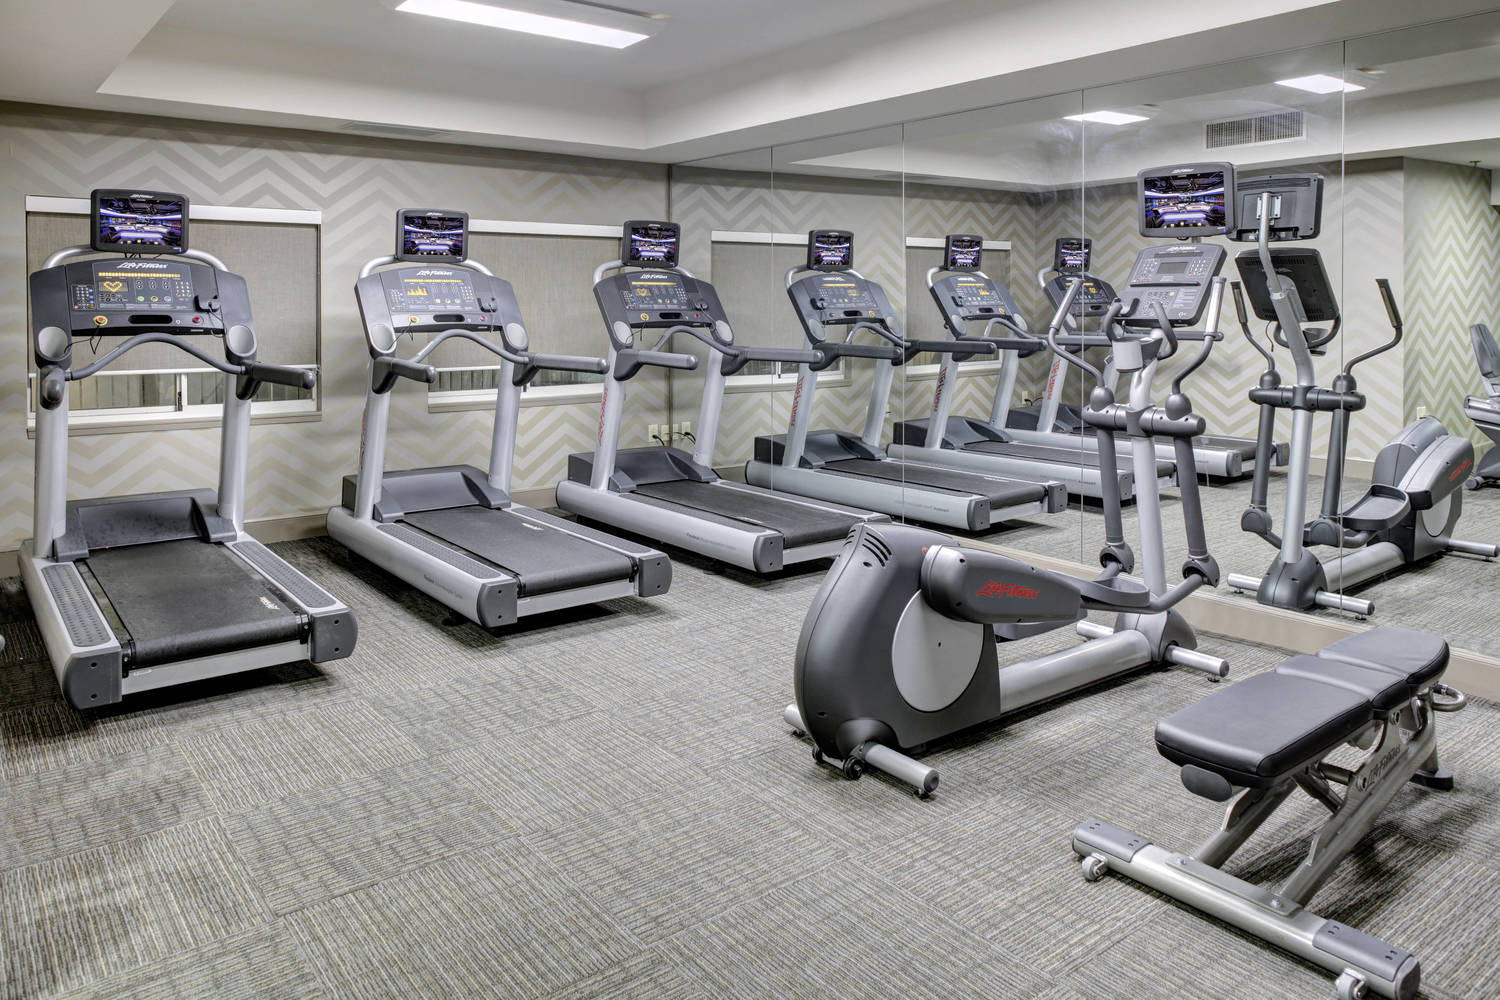 Our newly renovated, fully equipped 24-hour fitness center has all of your cardiovascular and free weight needs to maintain a healthy lifestyle while on the road.